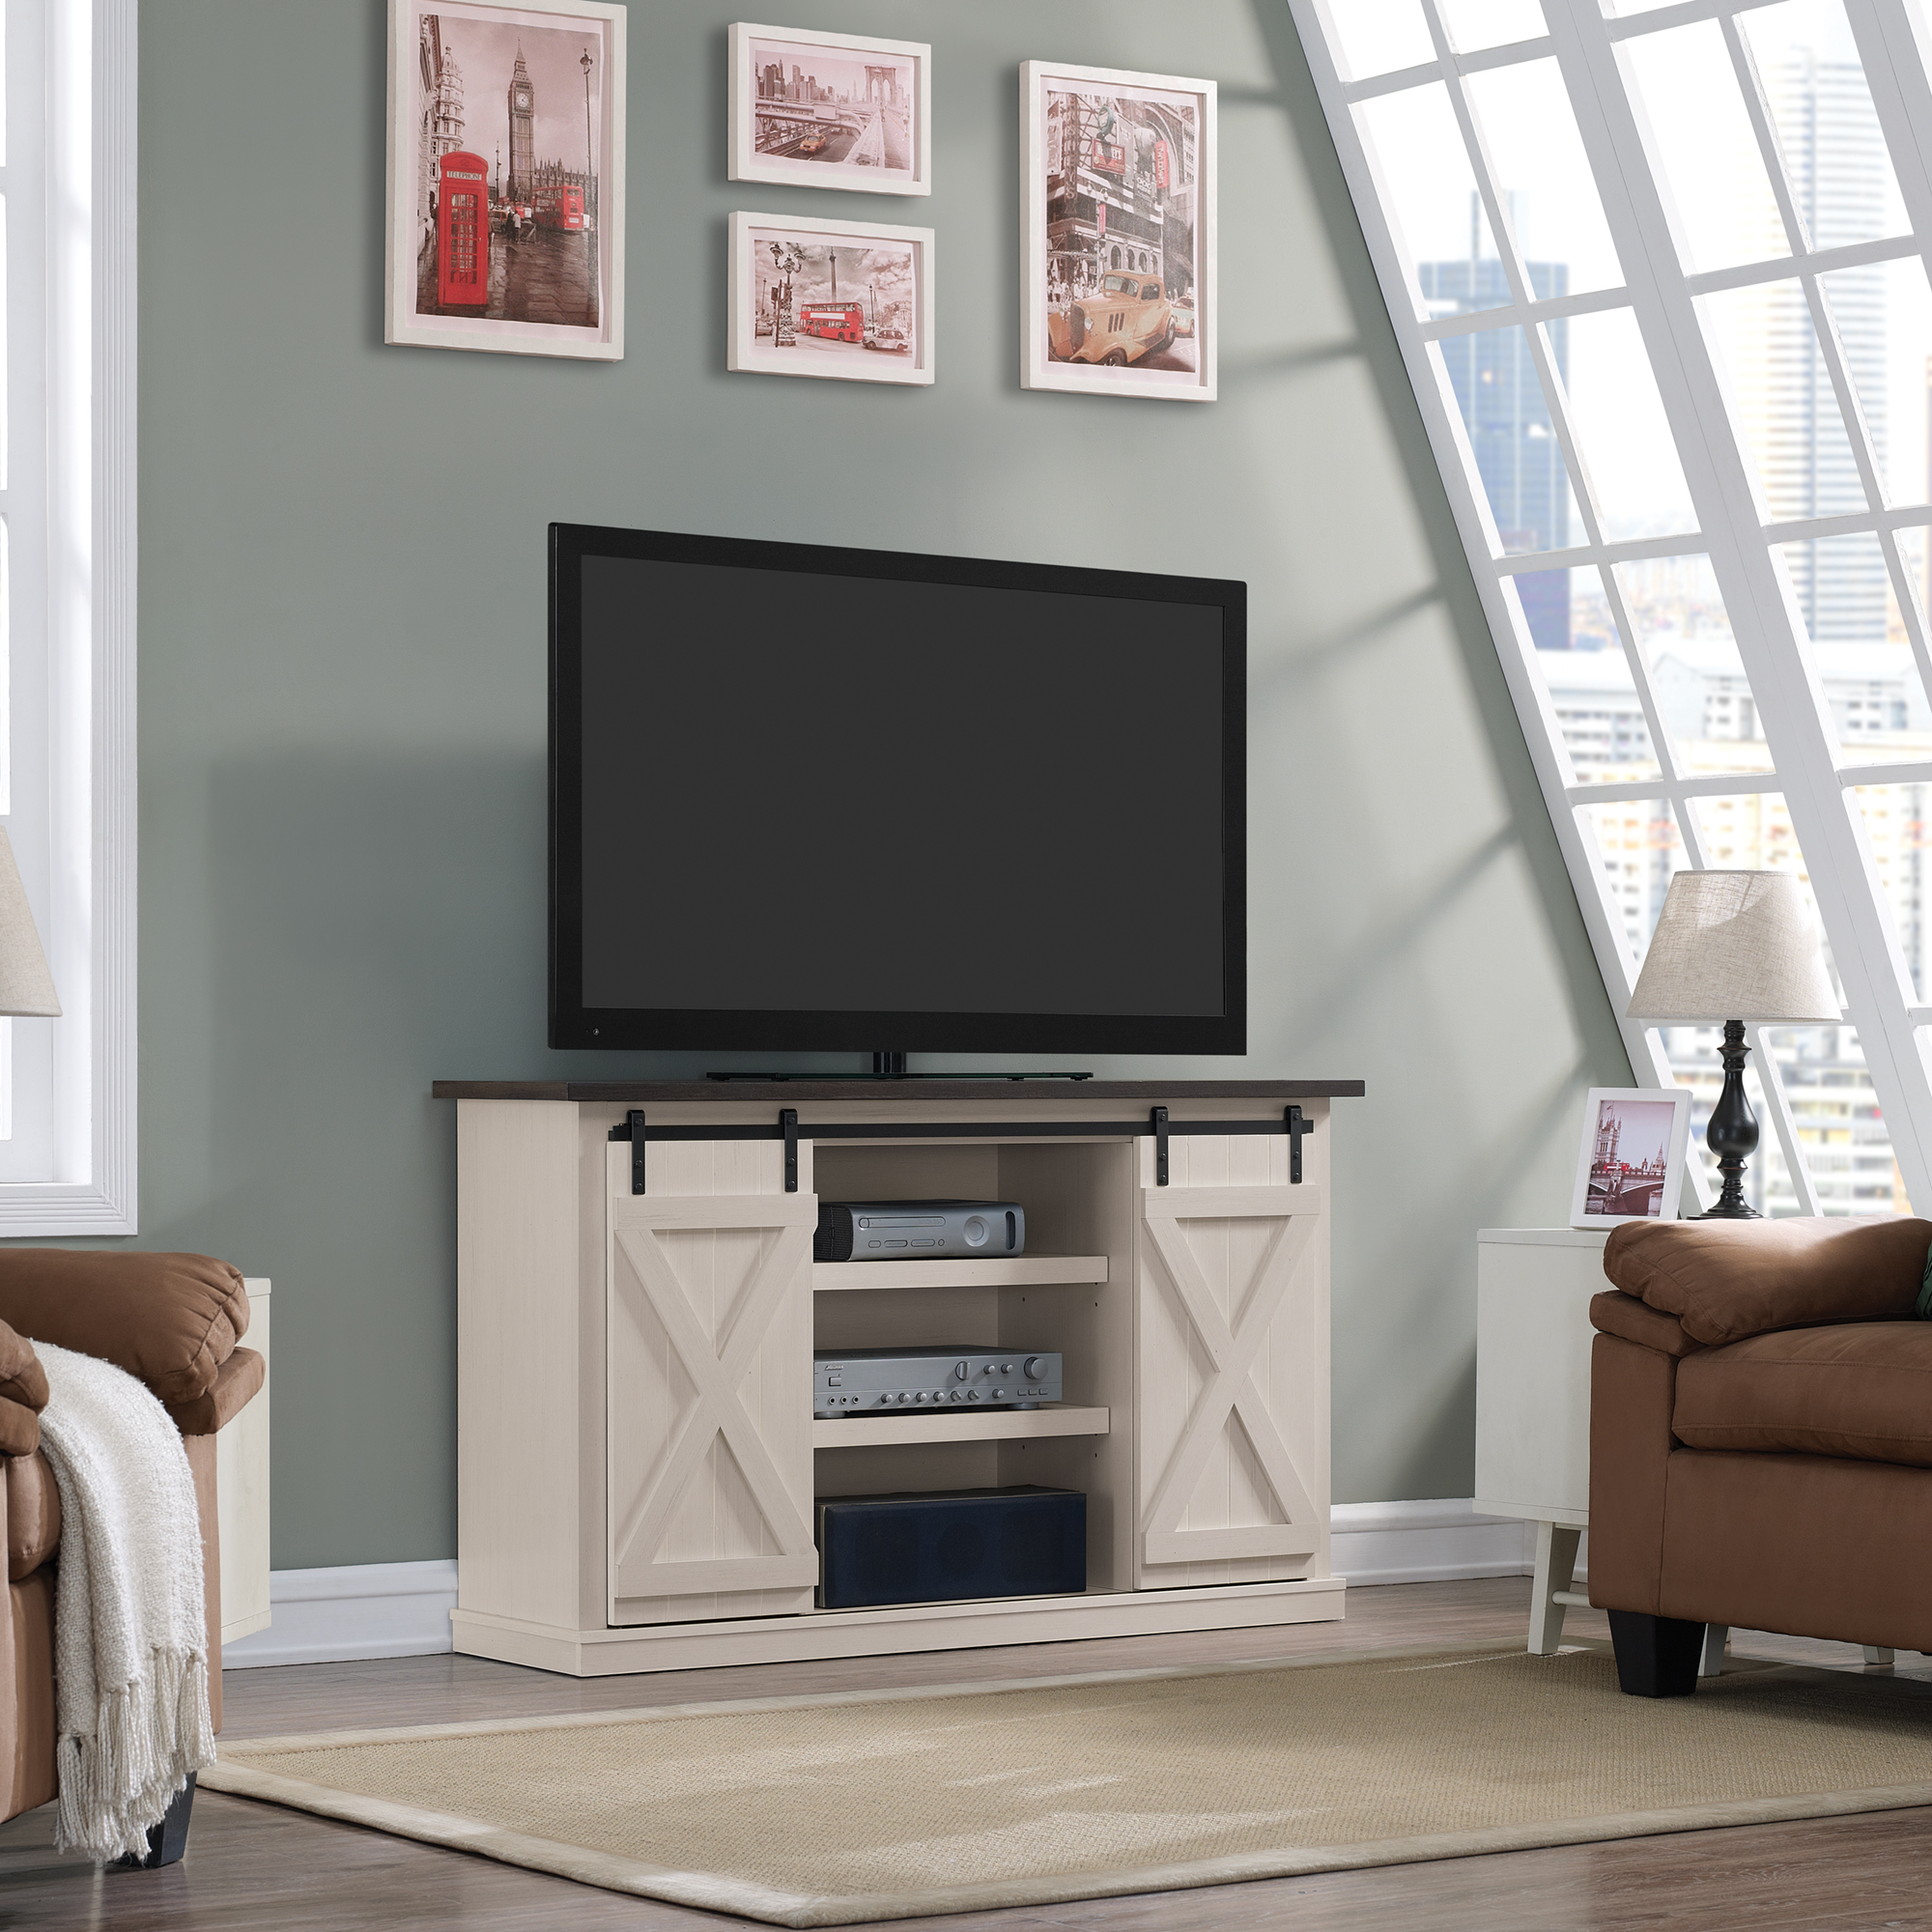 Picture of: Twin Star Home Terryville Barn Door Tv Stand For Tvs Up To 60 Old White Walmart Com Walmart Com